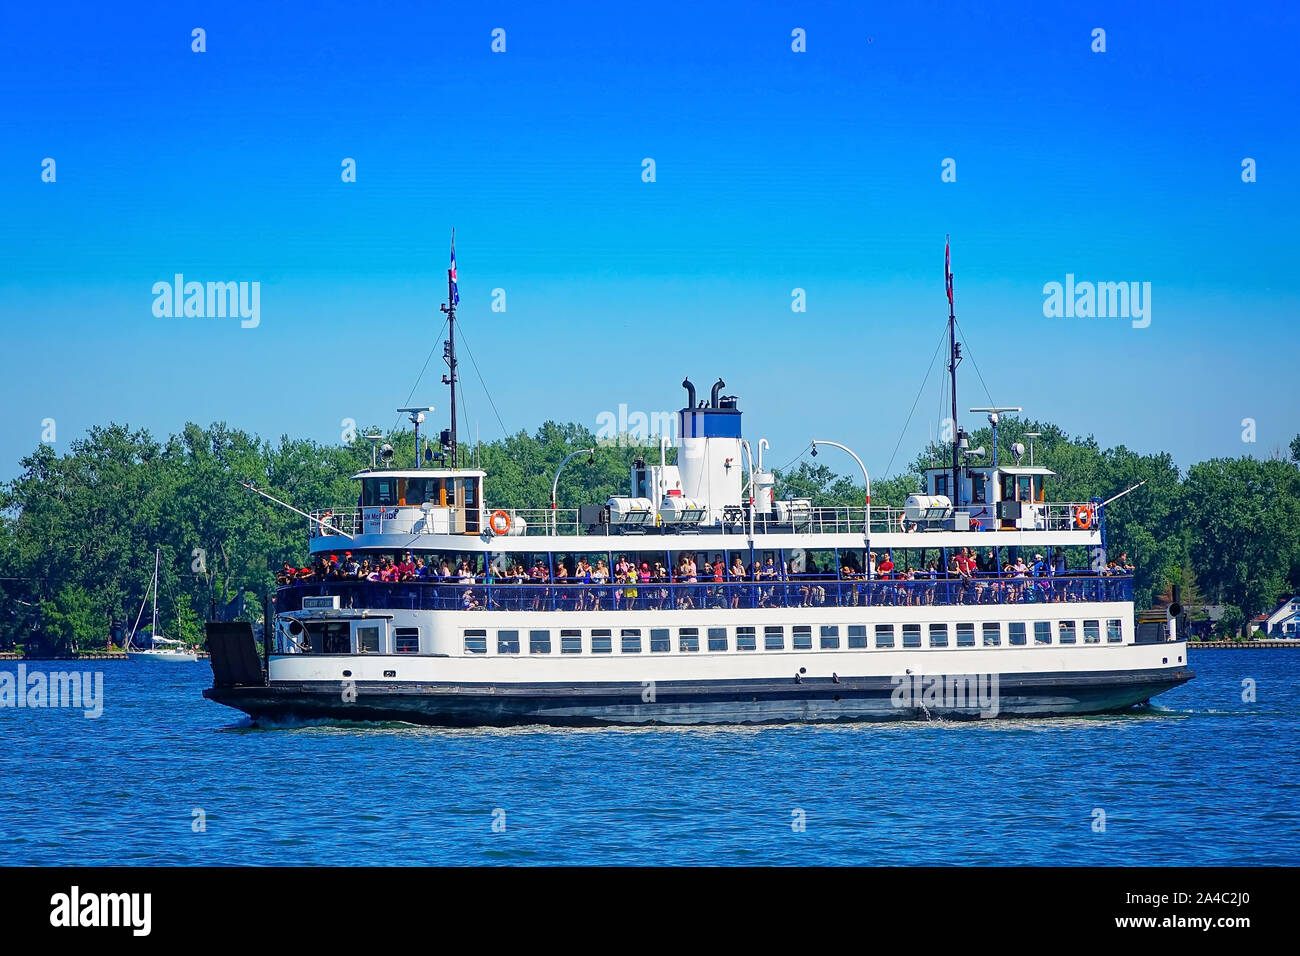 Toronto, Ontario, Canada-10 May, 2019: Toronto Islands Ferry bringing passengers to the Central Toronto Islands and Hanlan's Point Stock Photo